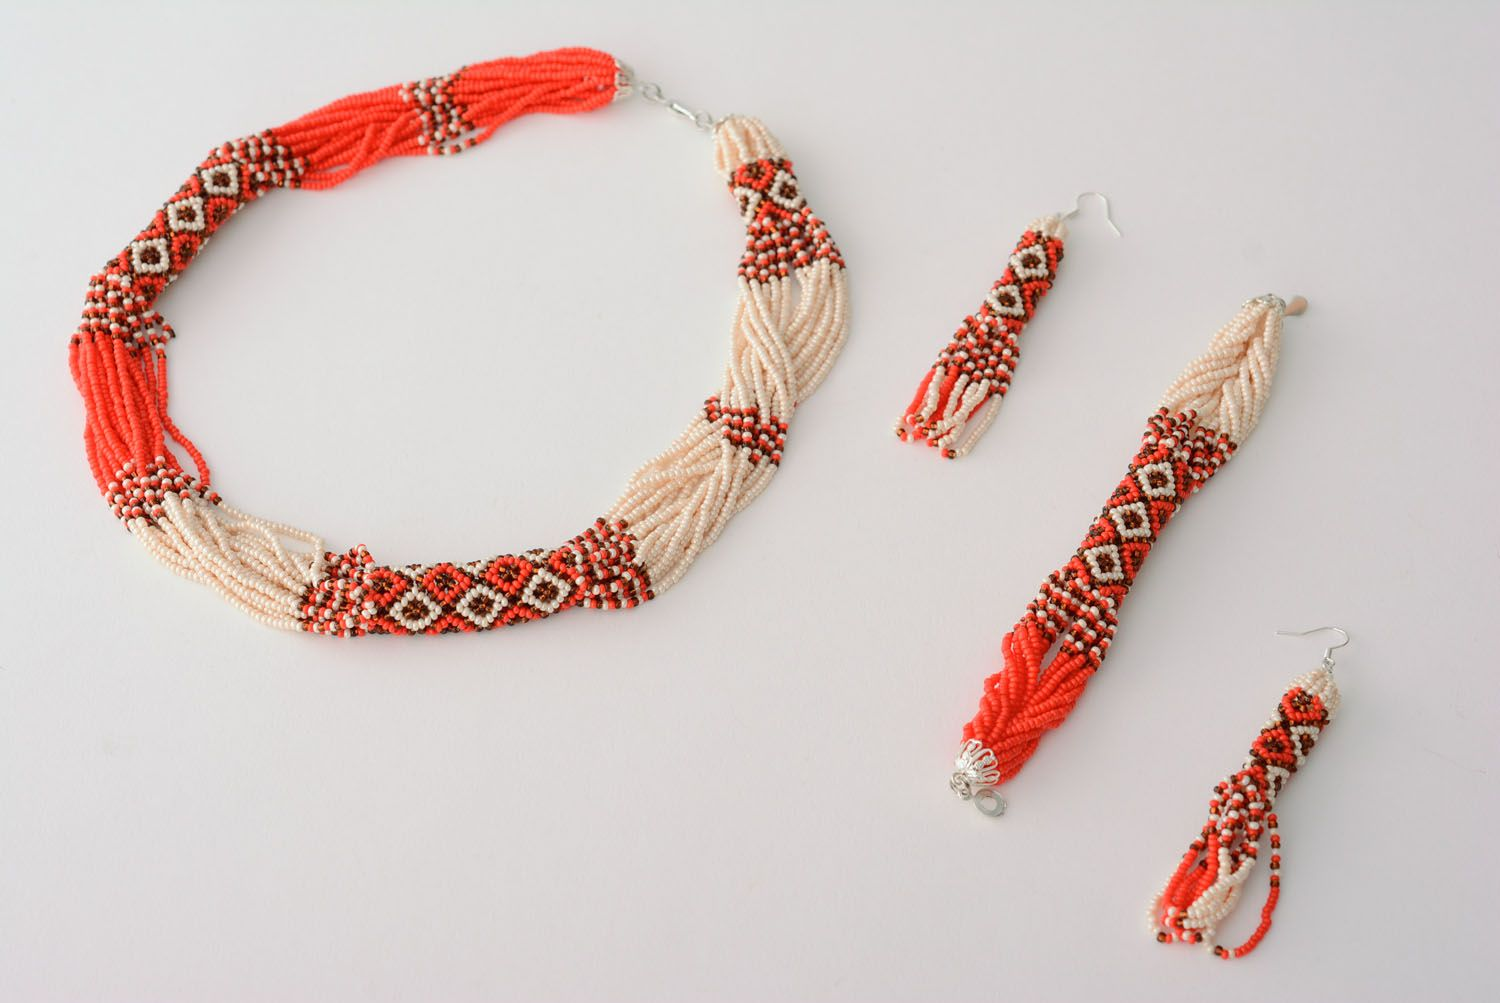 Homemade beaded jewelry set photo 3